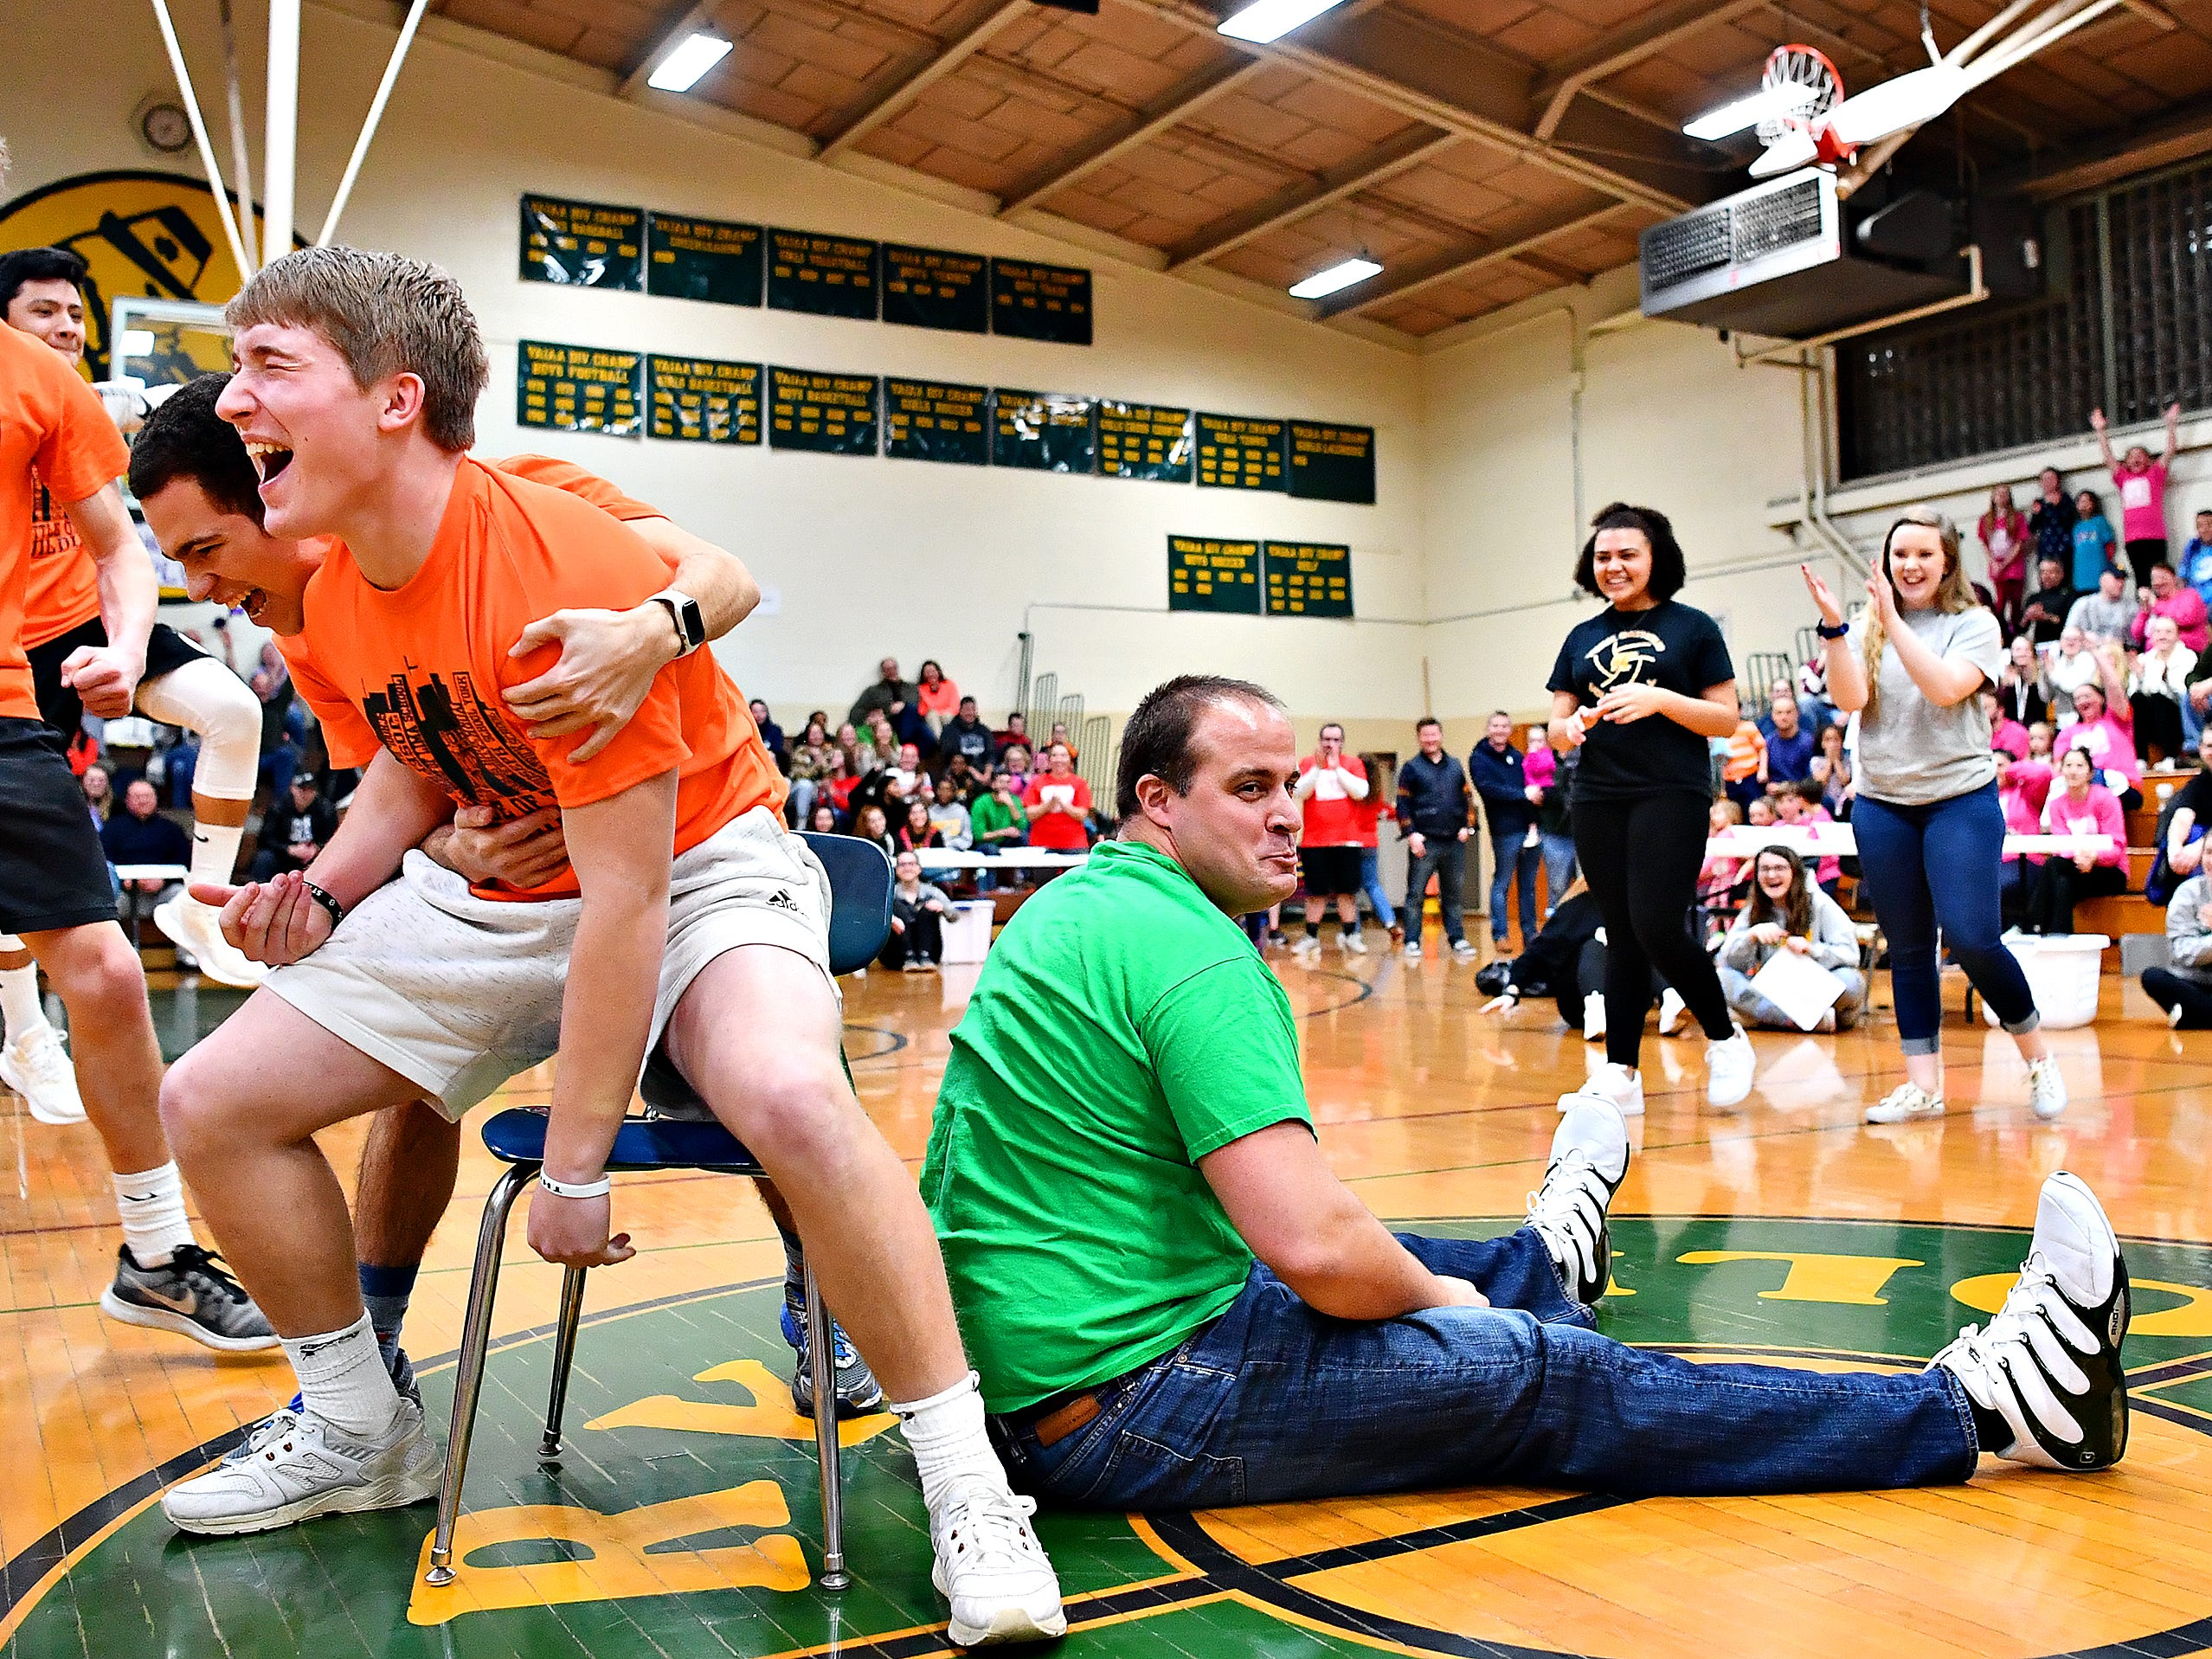 York Catholic senior Drew Snelbaker, left, celebrates after winning the final contest in musical chairs against fifth- and sixth-grade boys' basketball coach Joe Stein, right, during Battle of the Buildings at York Catholic High School in York City, Saturday, Jan. 26, 2019. Dawn J. Sagert photo